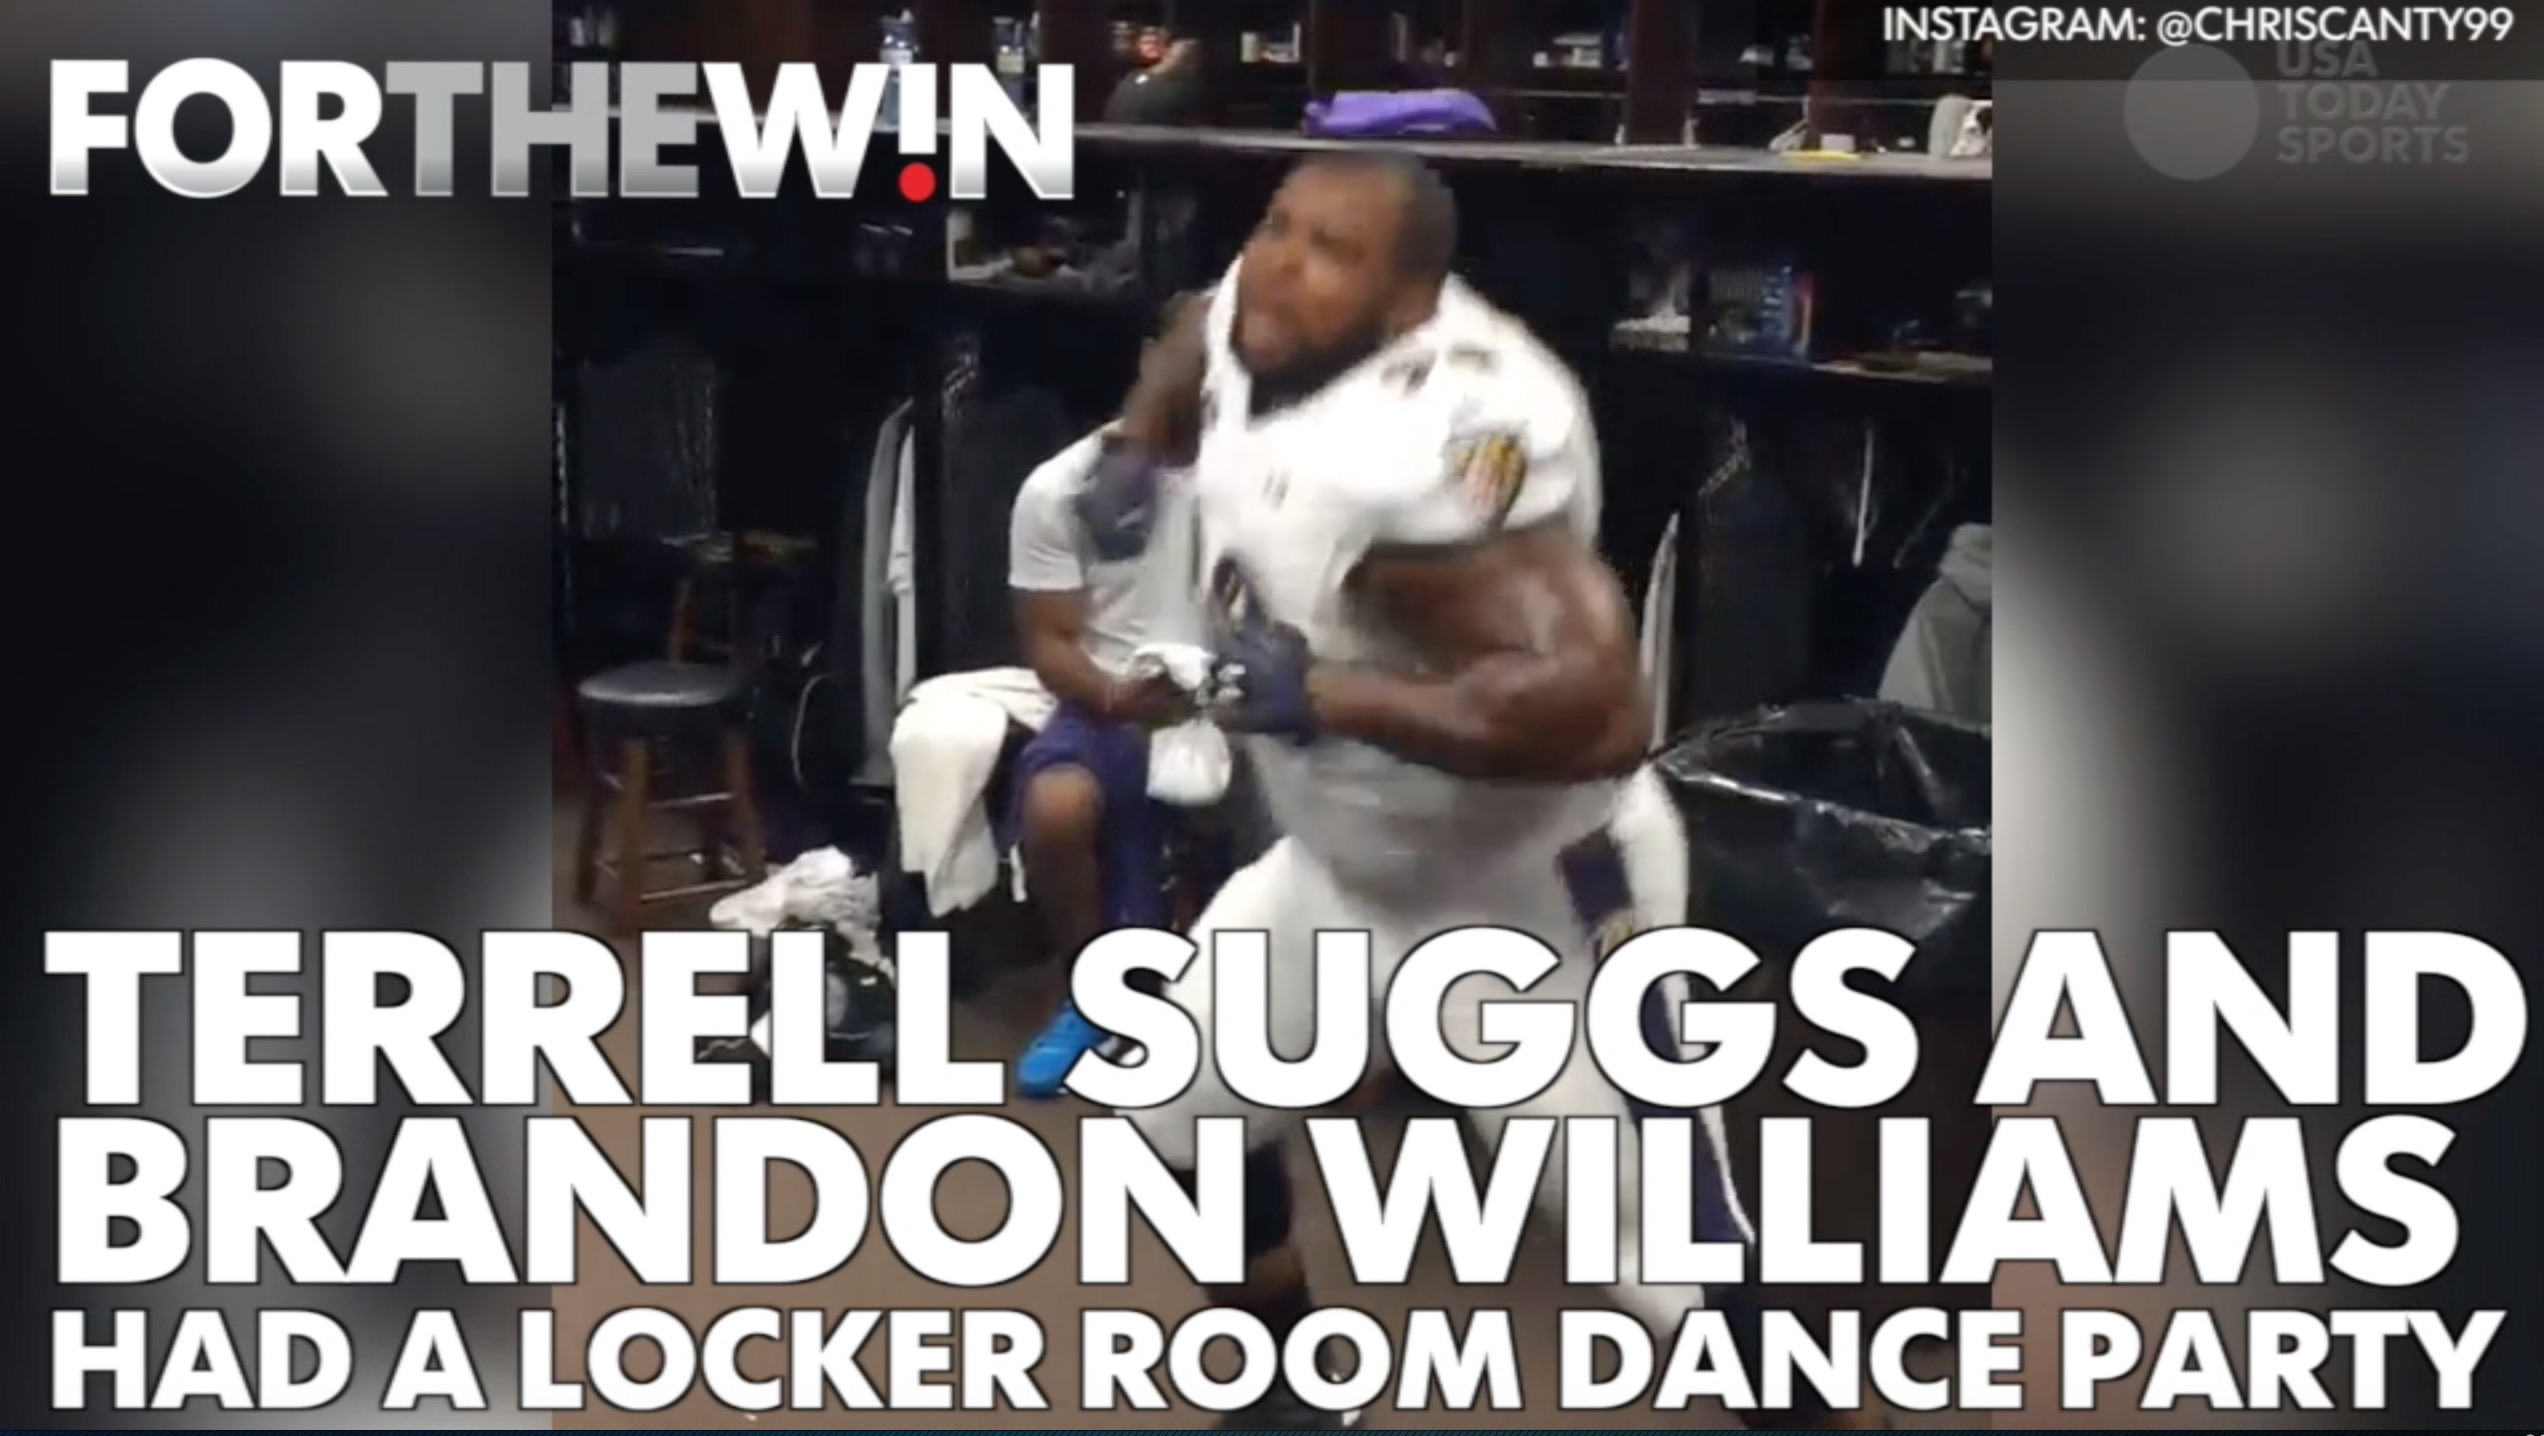 The Baltimore Ravens had a locker room dance party